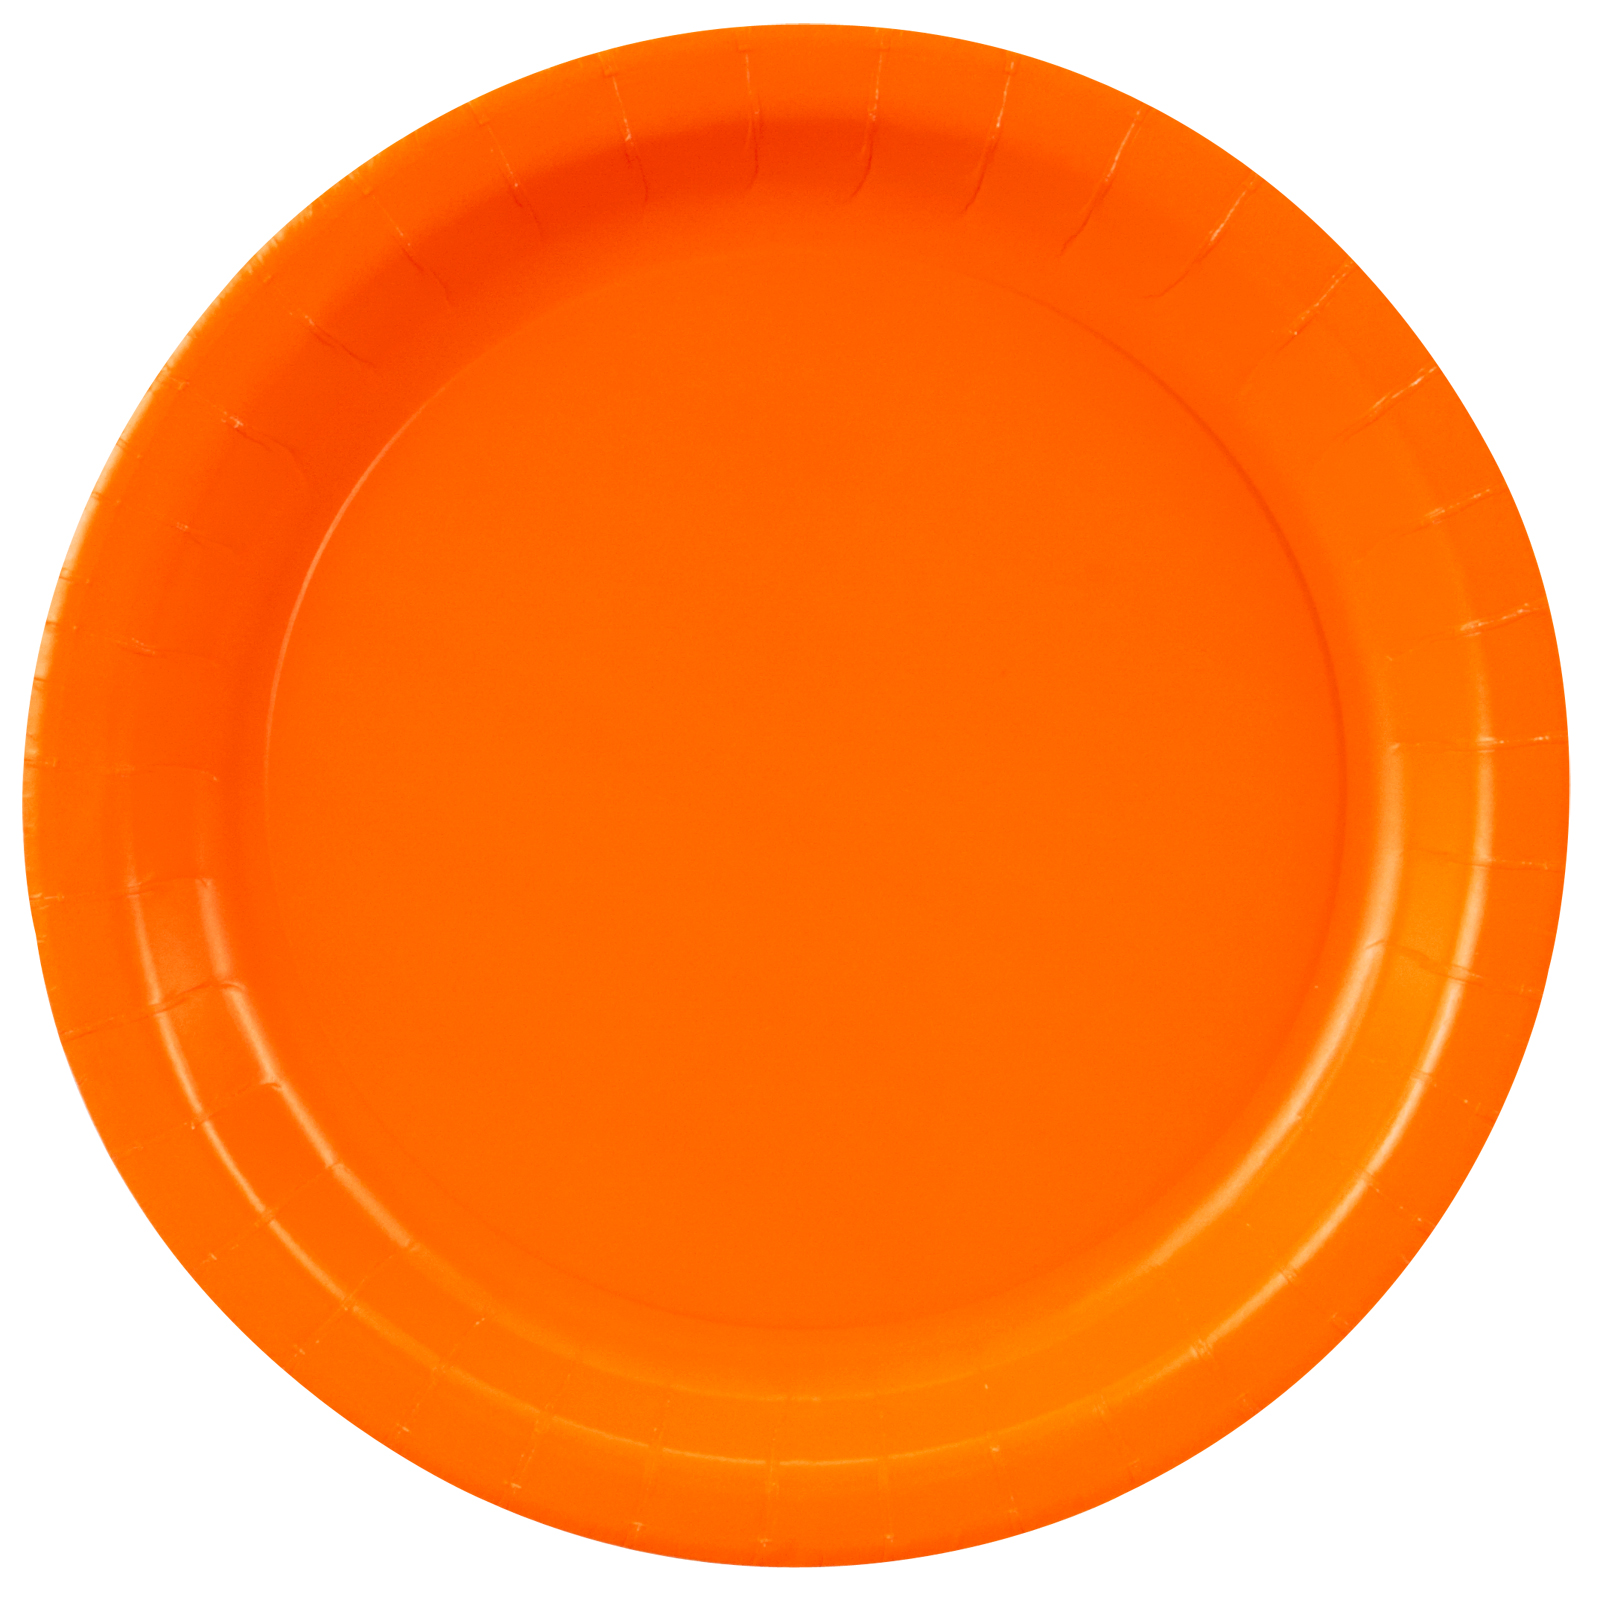 ... cheap paper plates canada Serve up a delightful celebration on sturdy navy blue paper plates they ...  sc 1 st  College paper Writing Service infra-sauny.info & Cheap paper plates canada Homework Service qdhomeworkxzxv.infra ...